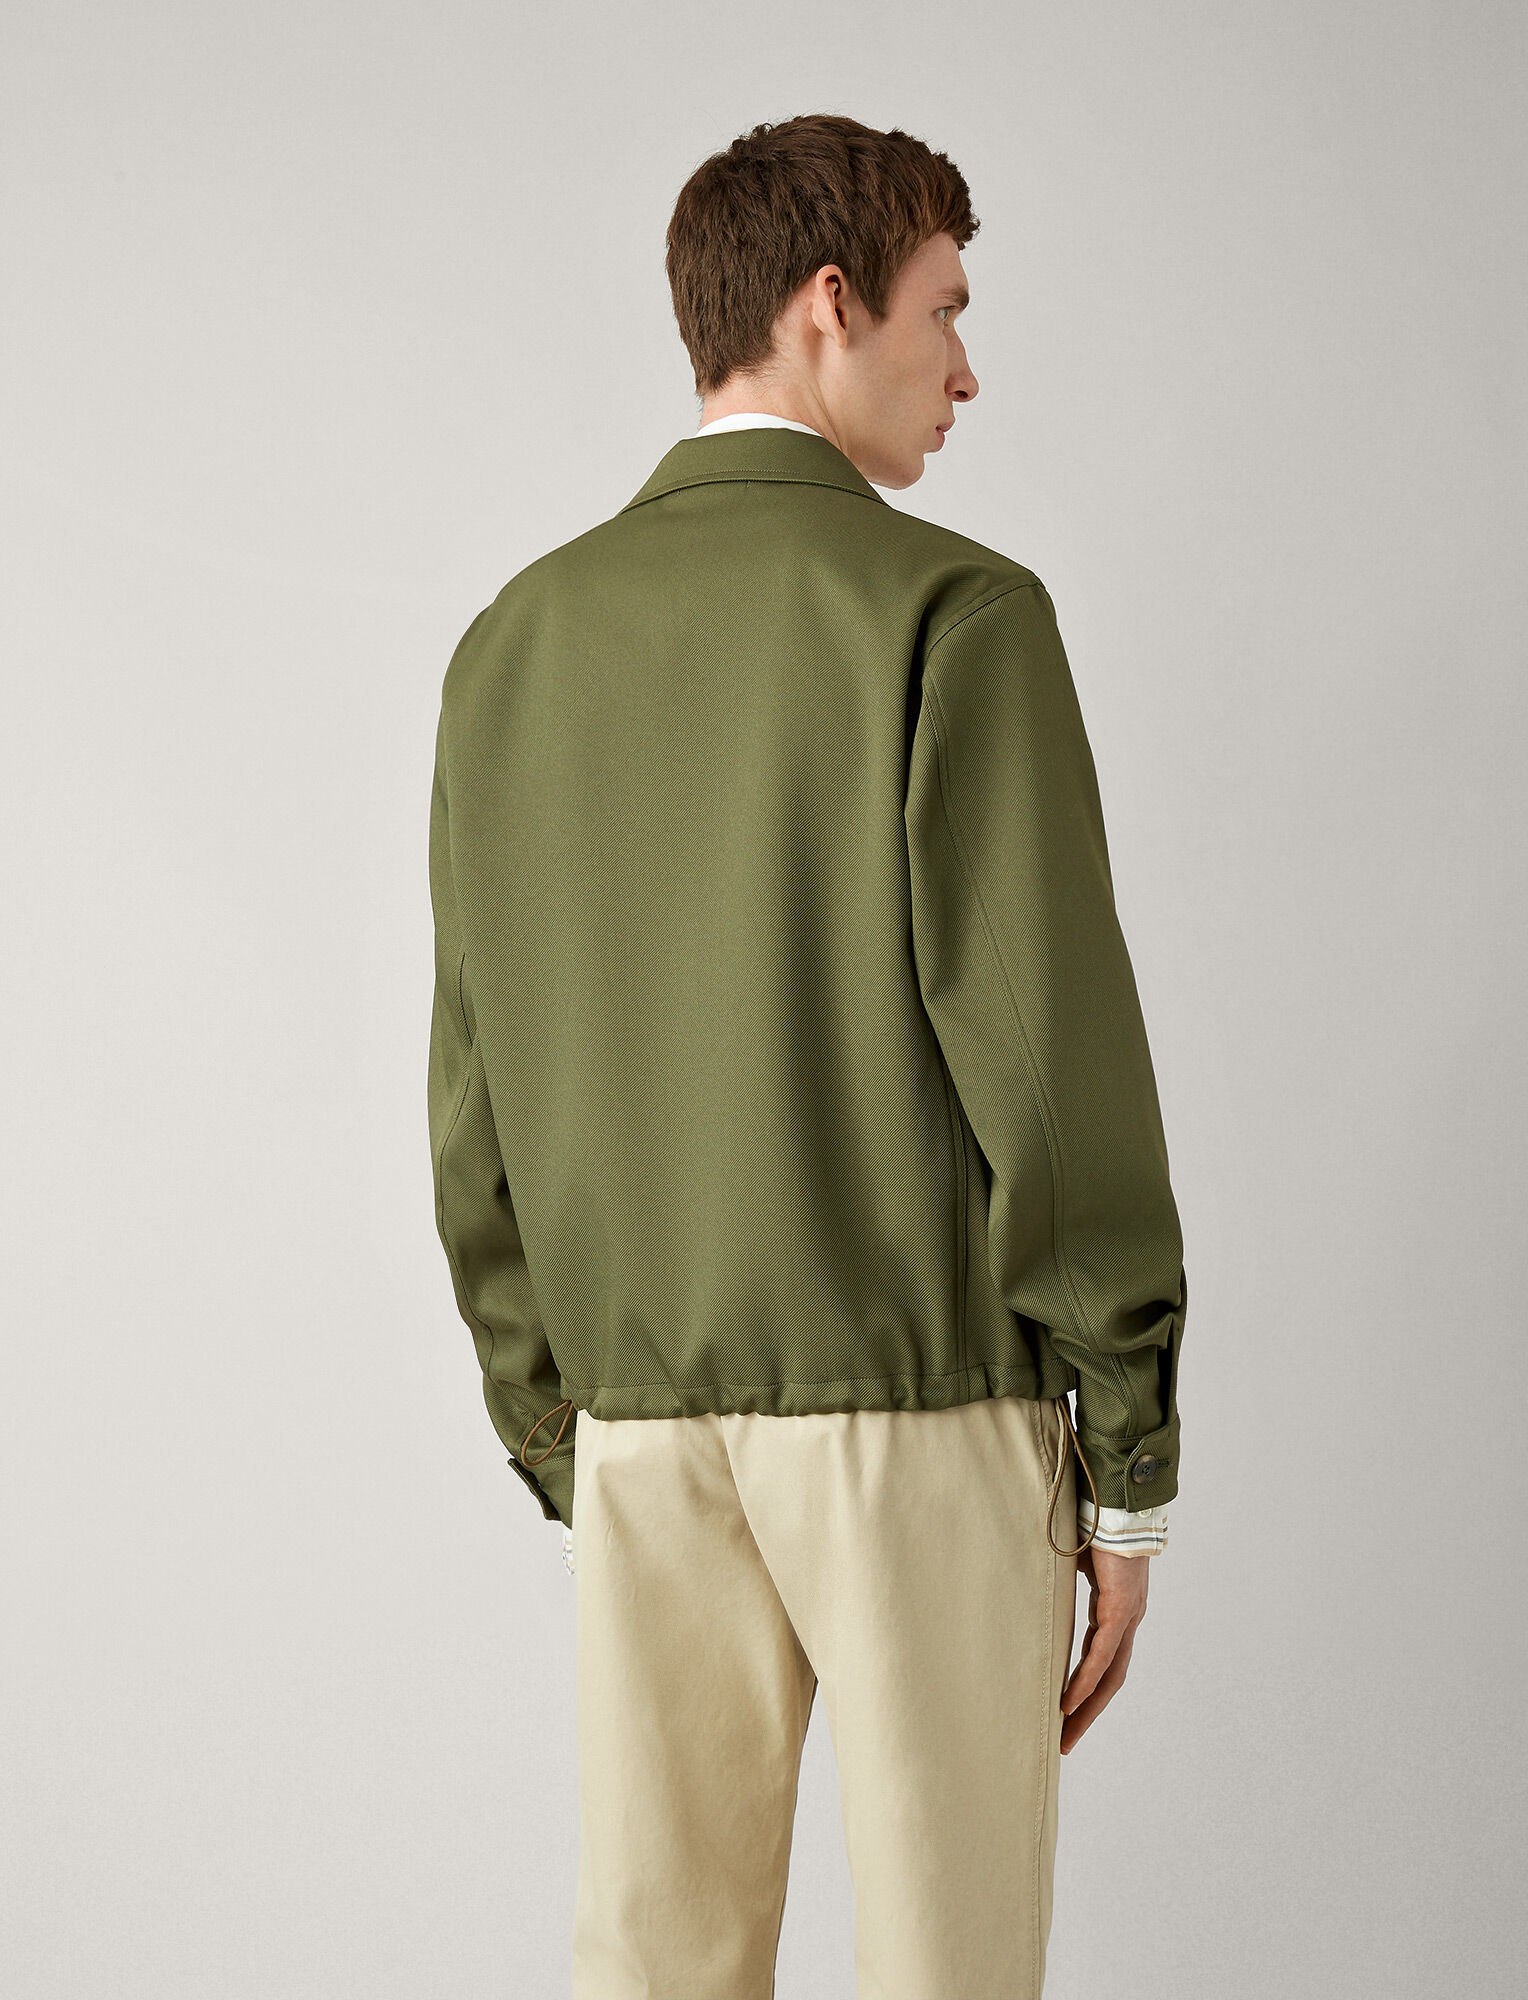 Joseph, Chris Engineered Twill Coat, in KHAKI